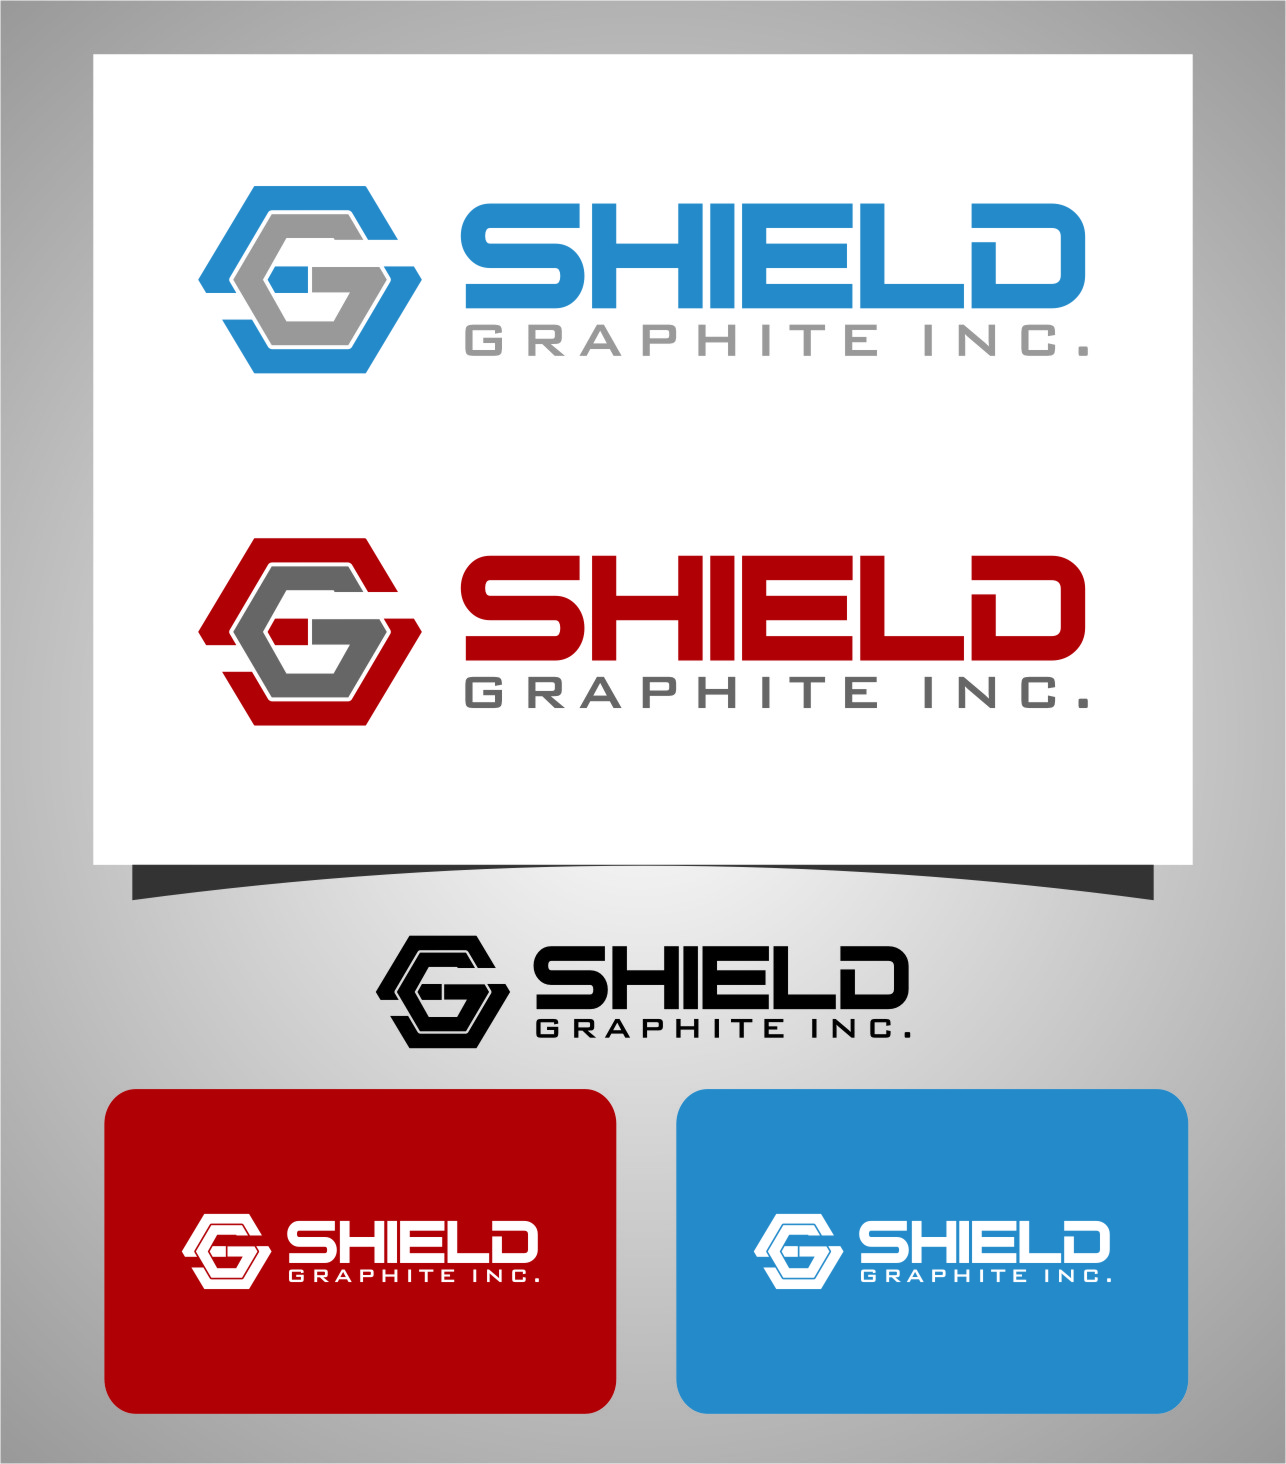 Logo Design by Ngepet_art - Entry No. 149 in the Logo Design Contest Imaginative Logo Design for Shield Graphite Inc..